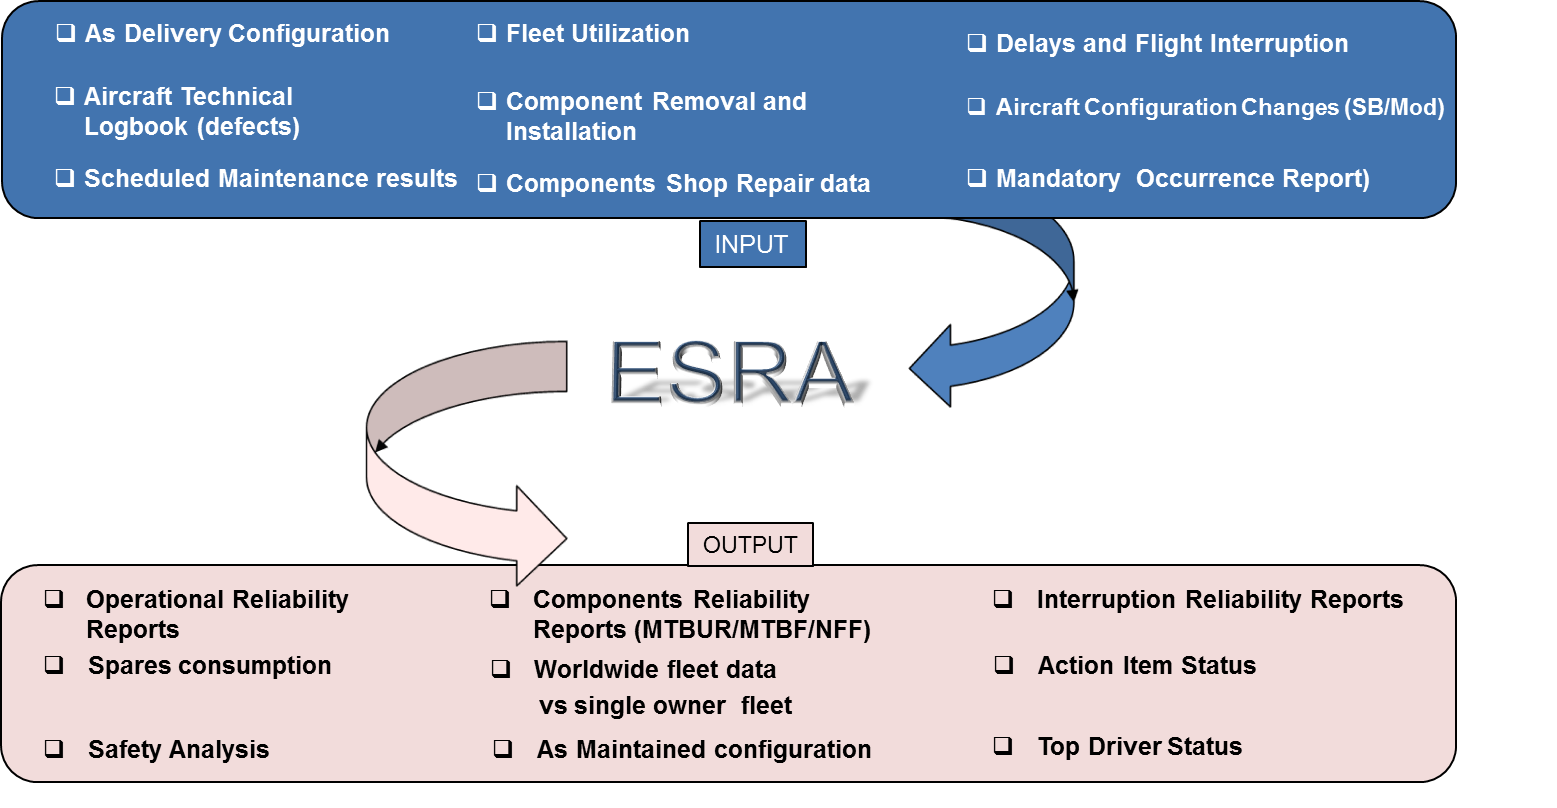 Expert System for Reliability in Aeronautics Inputs and Outputs